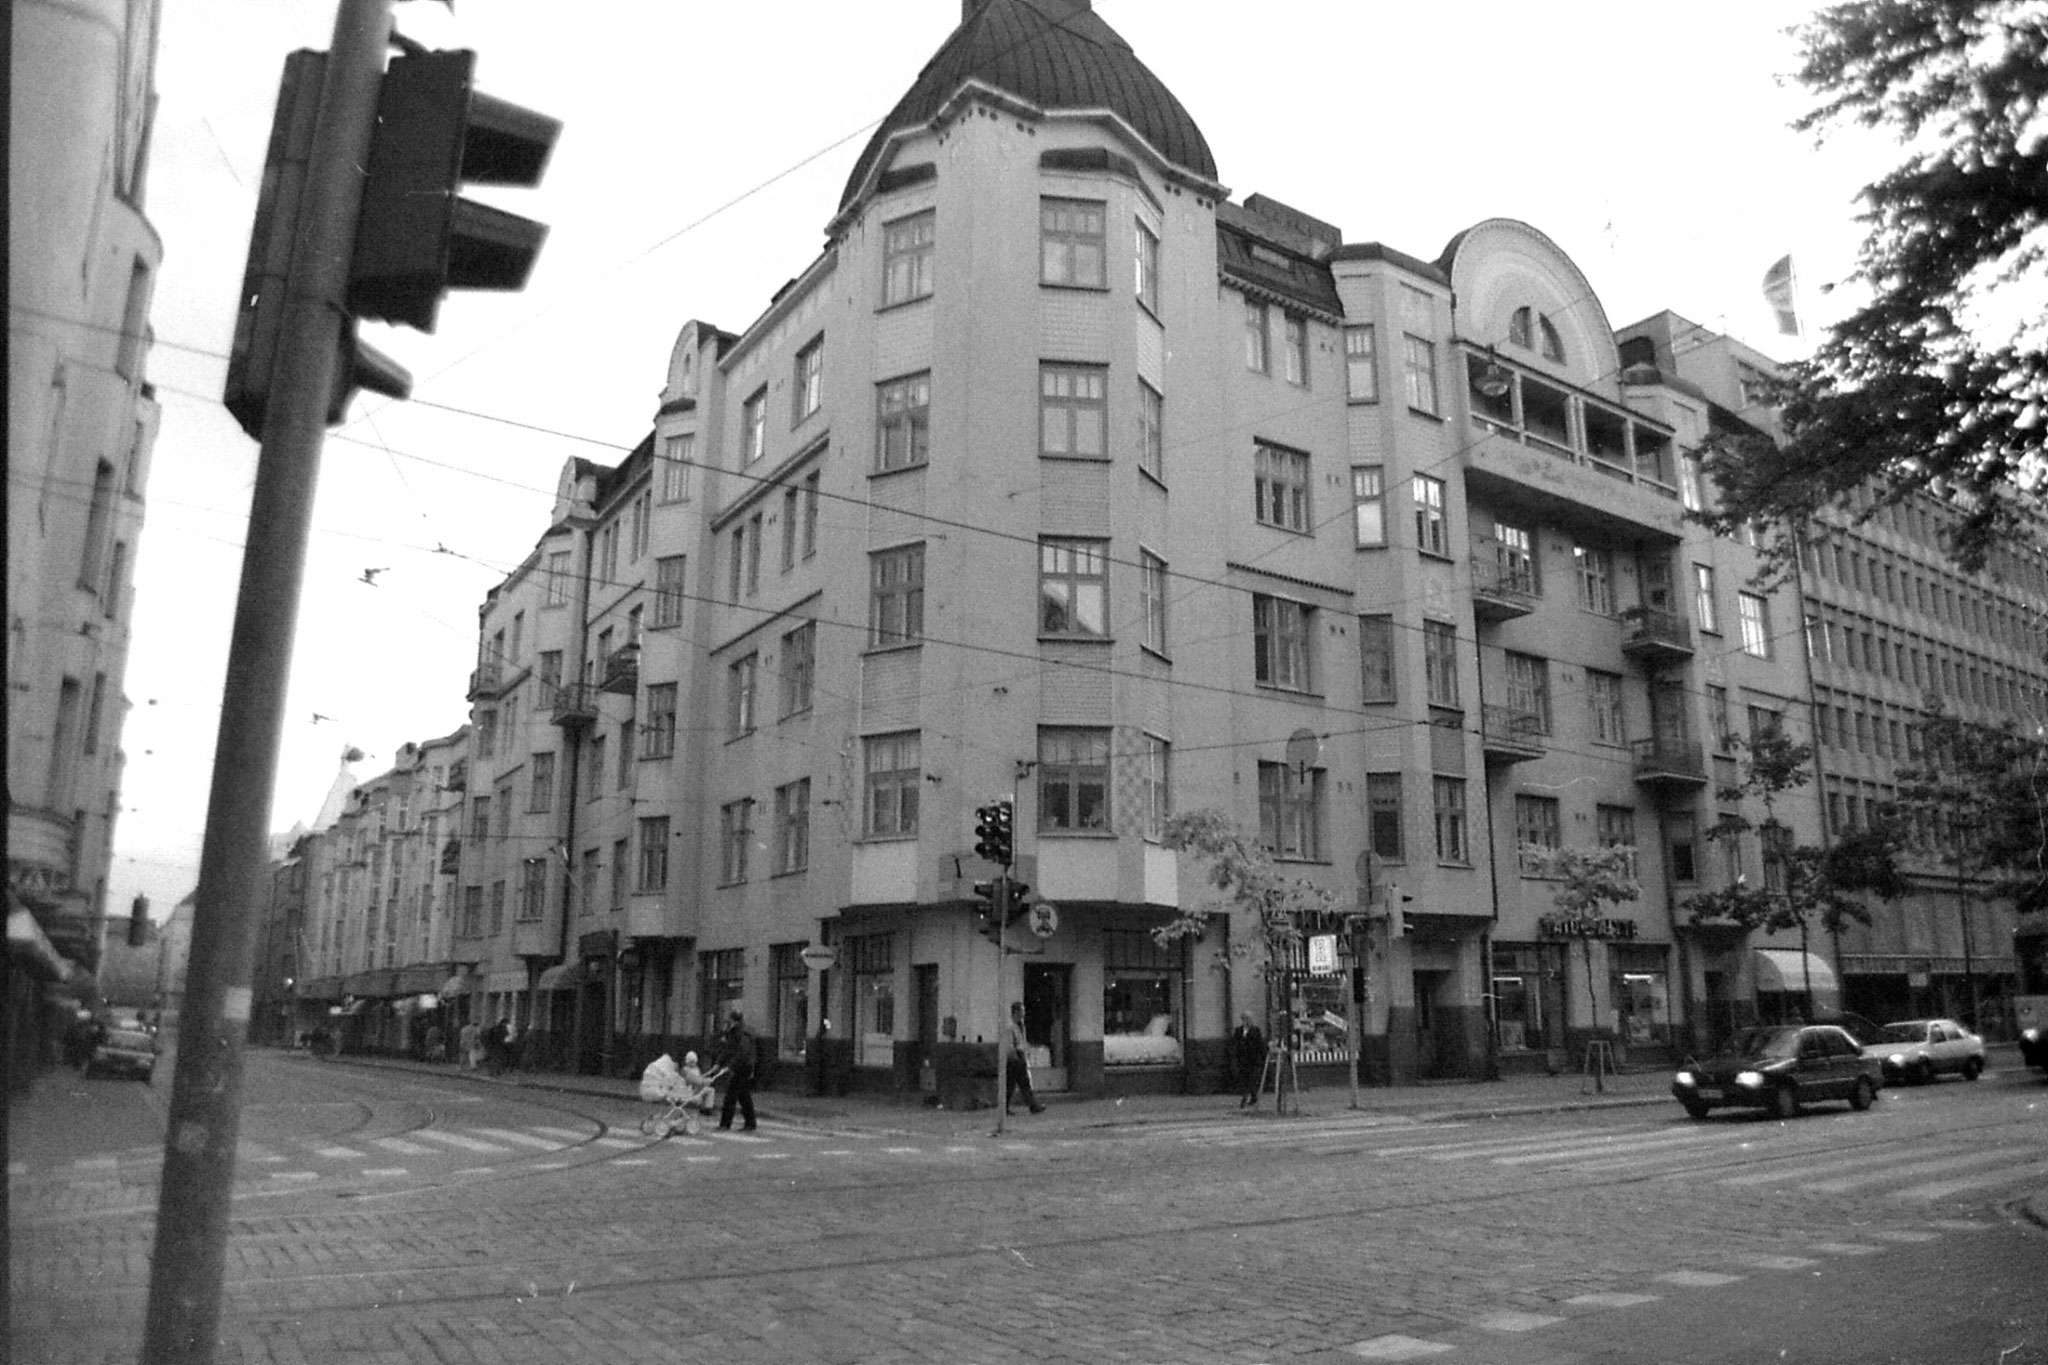 2/10/1988: 19: Jugenstil at Fredrikinkatu